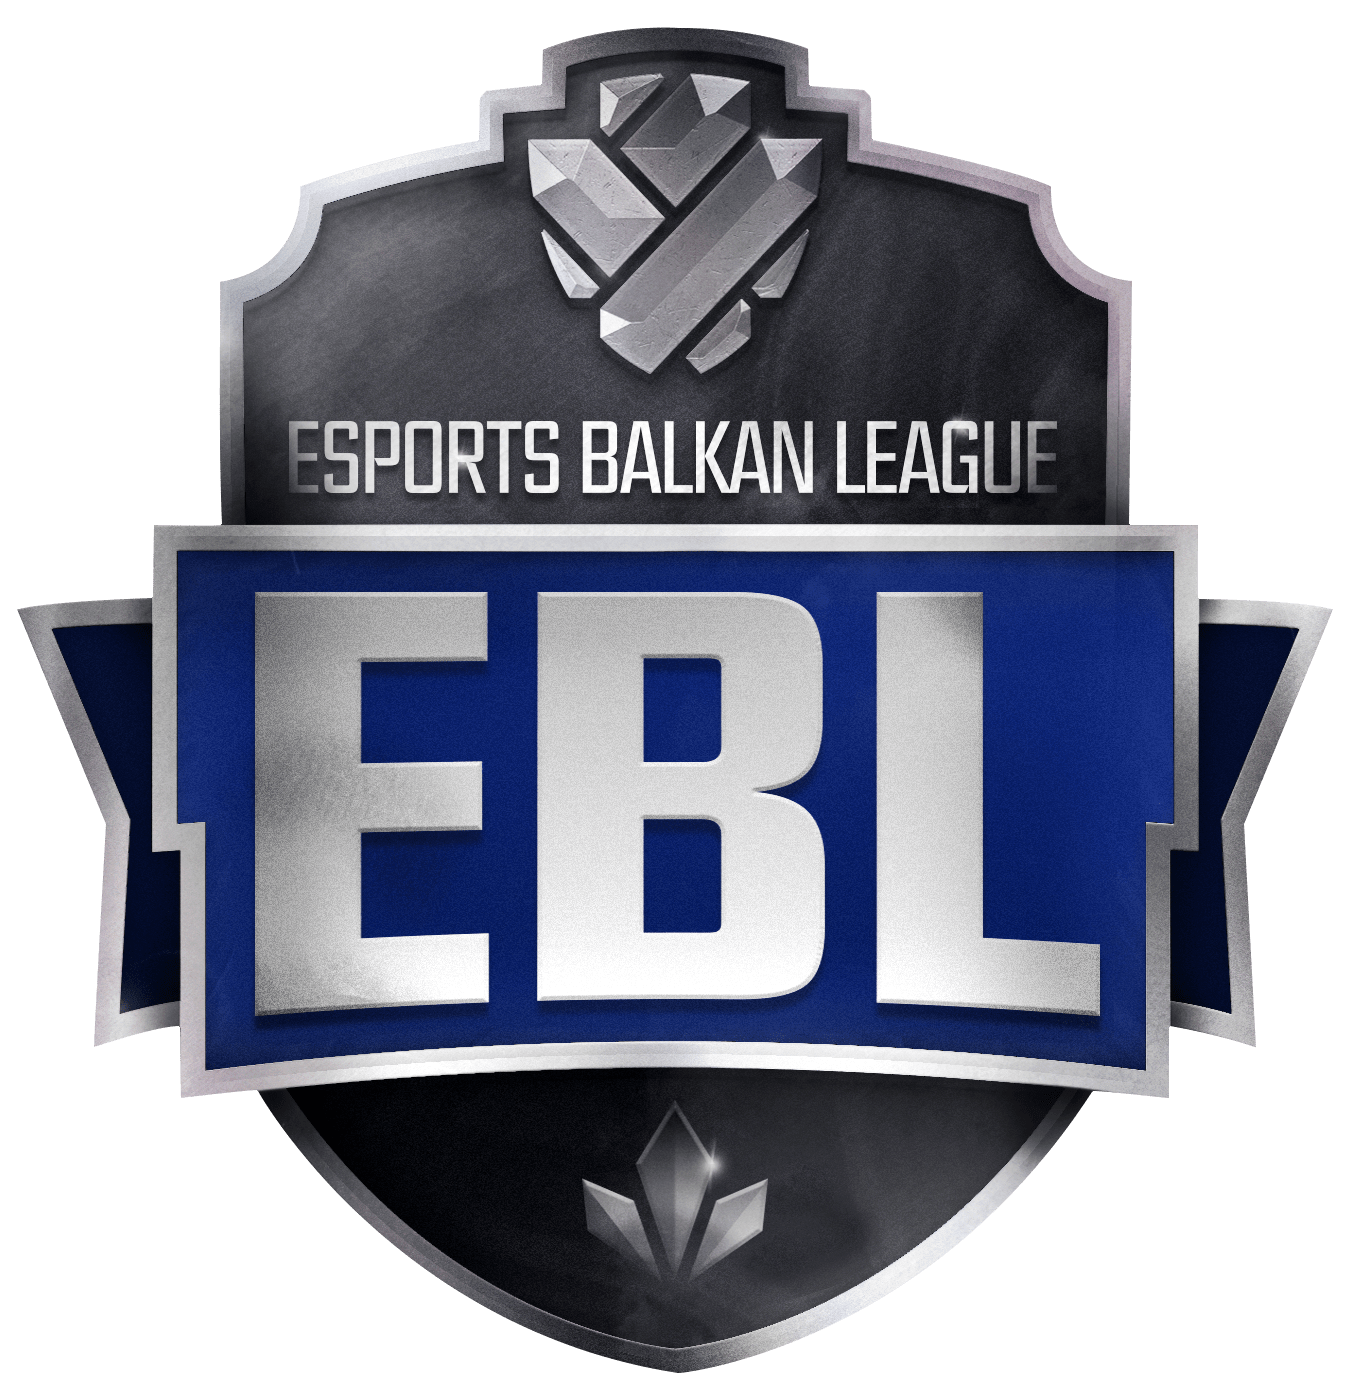 Esports Balkan League: Season 2 - Group Stage